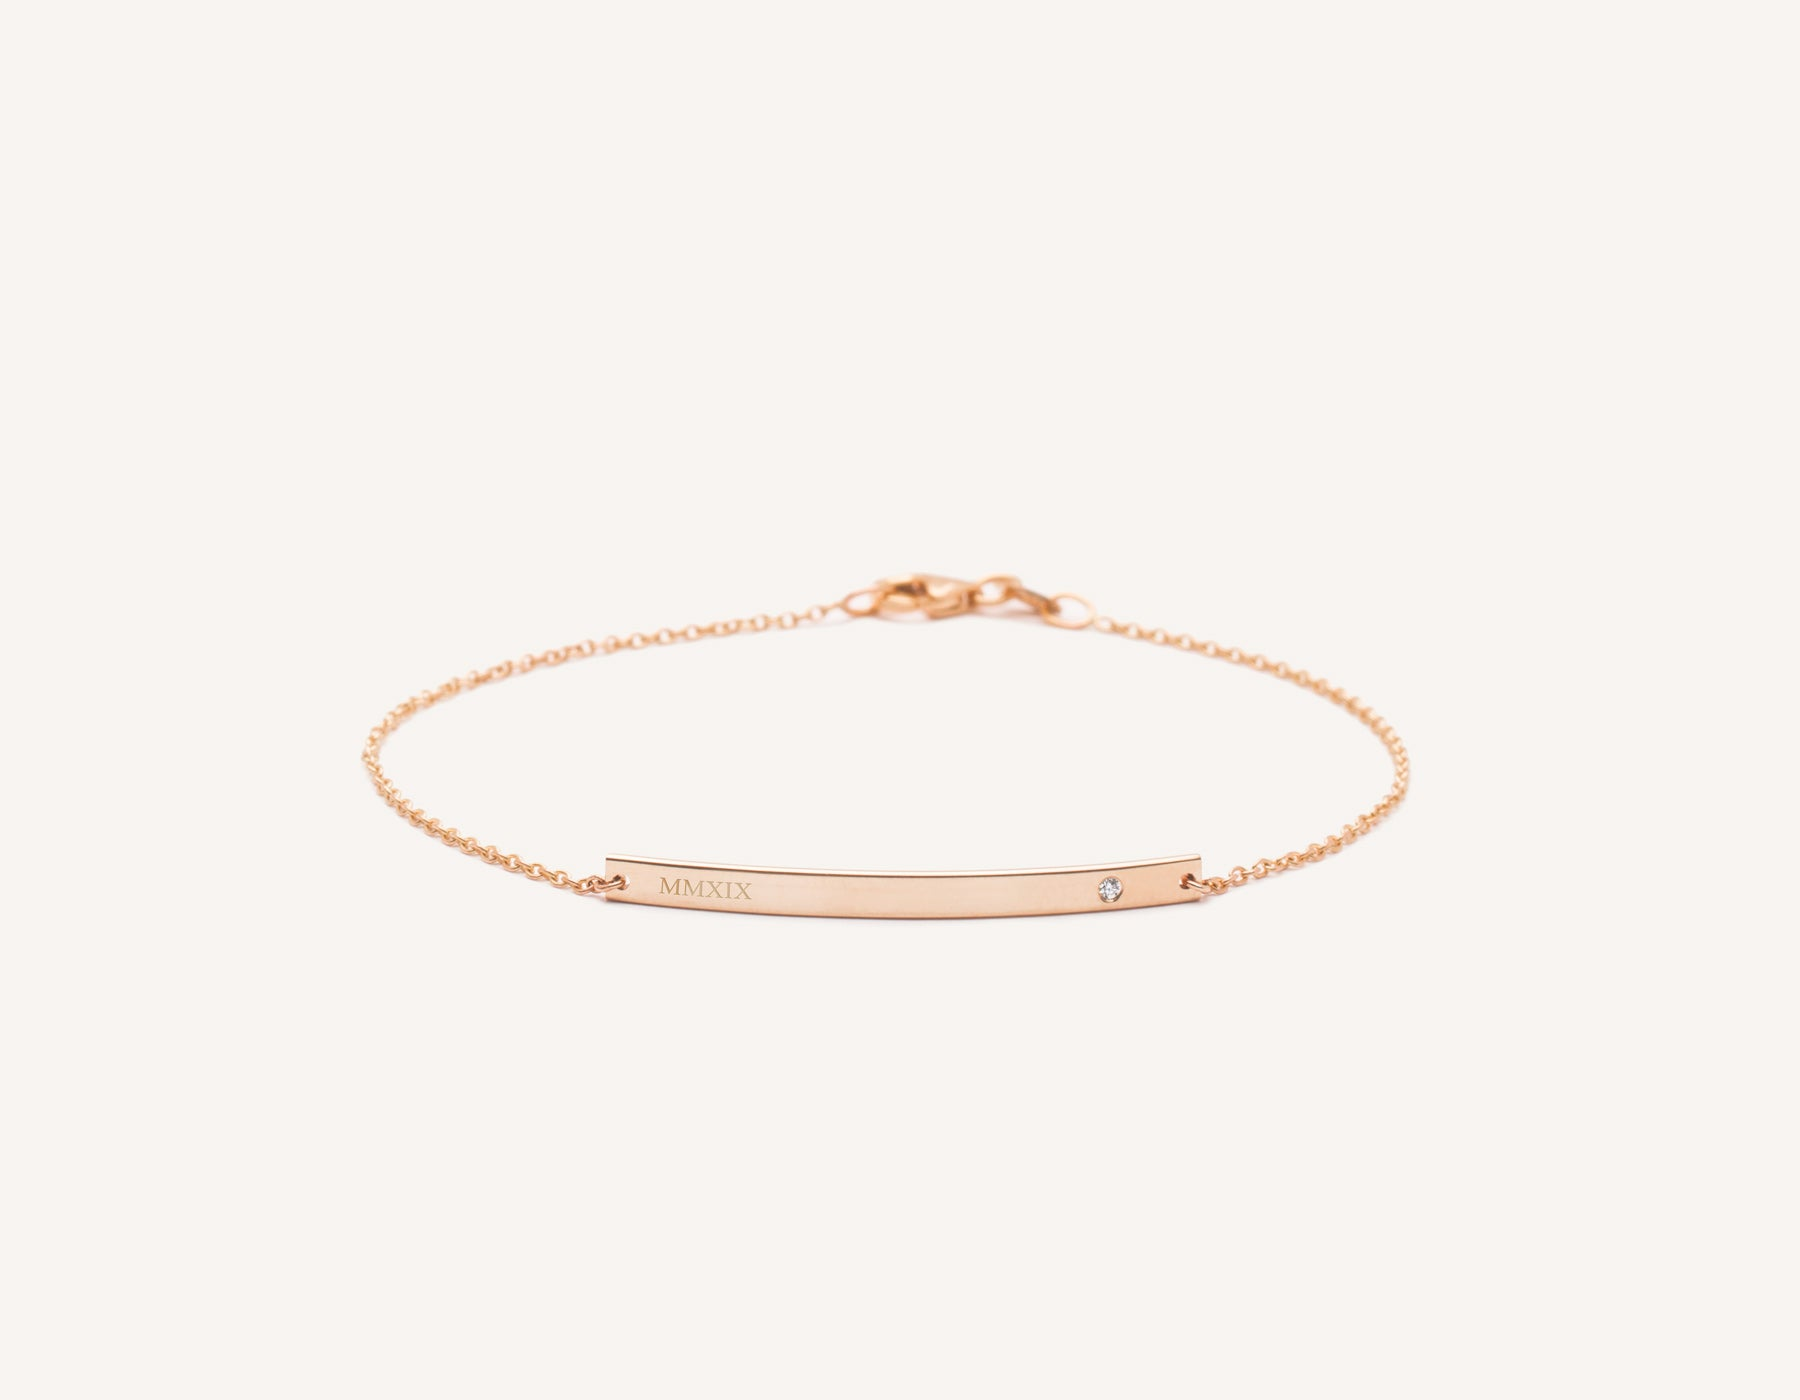 Engraved simple 14k Solid Gold Bar Bracelet with small diamond on minimalist chain with lobster clasp Vrai and Oro, 14K Rose Gold